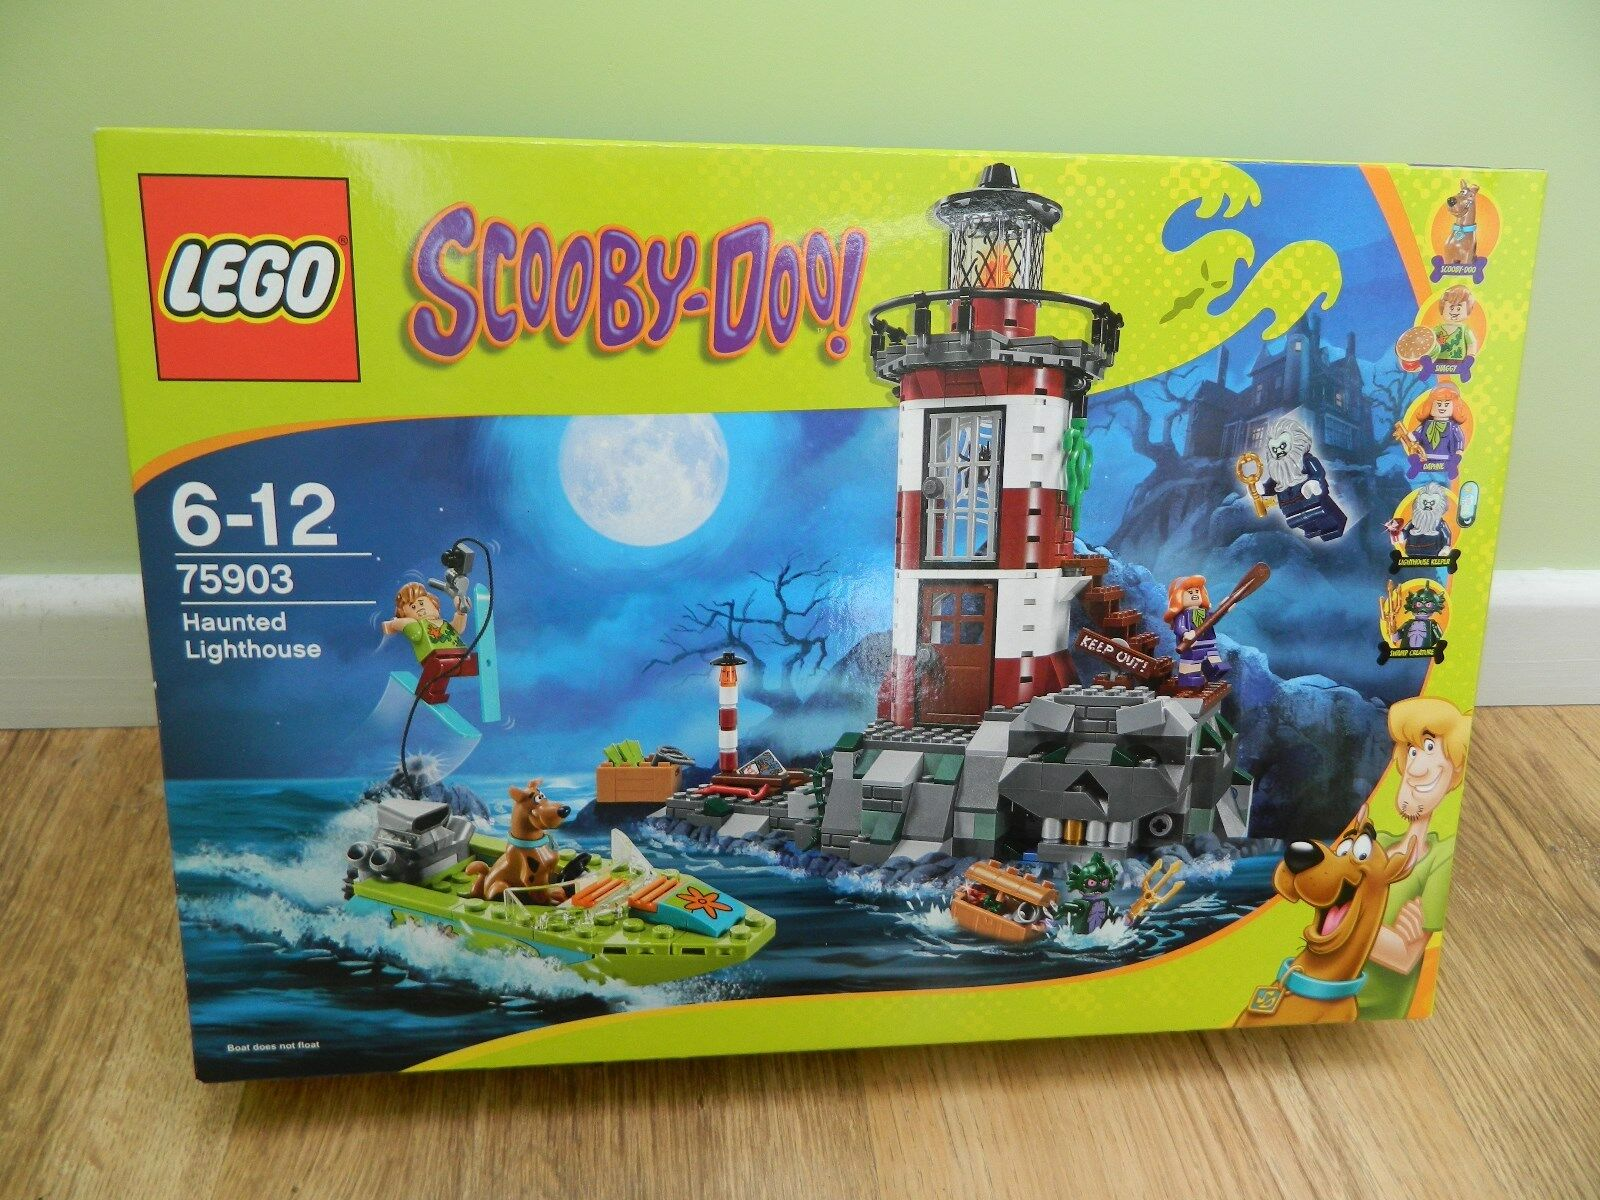 Lego Scooby Doo – 75903 Haunted Lighthouse - New Sealed – BNIB – Retired 2015